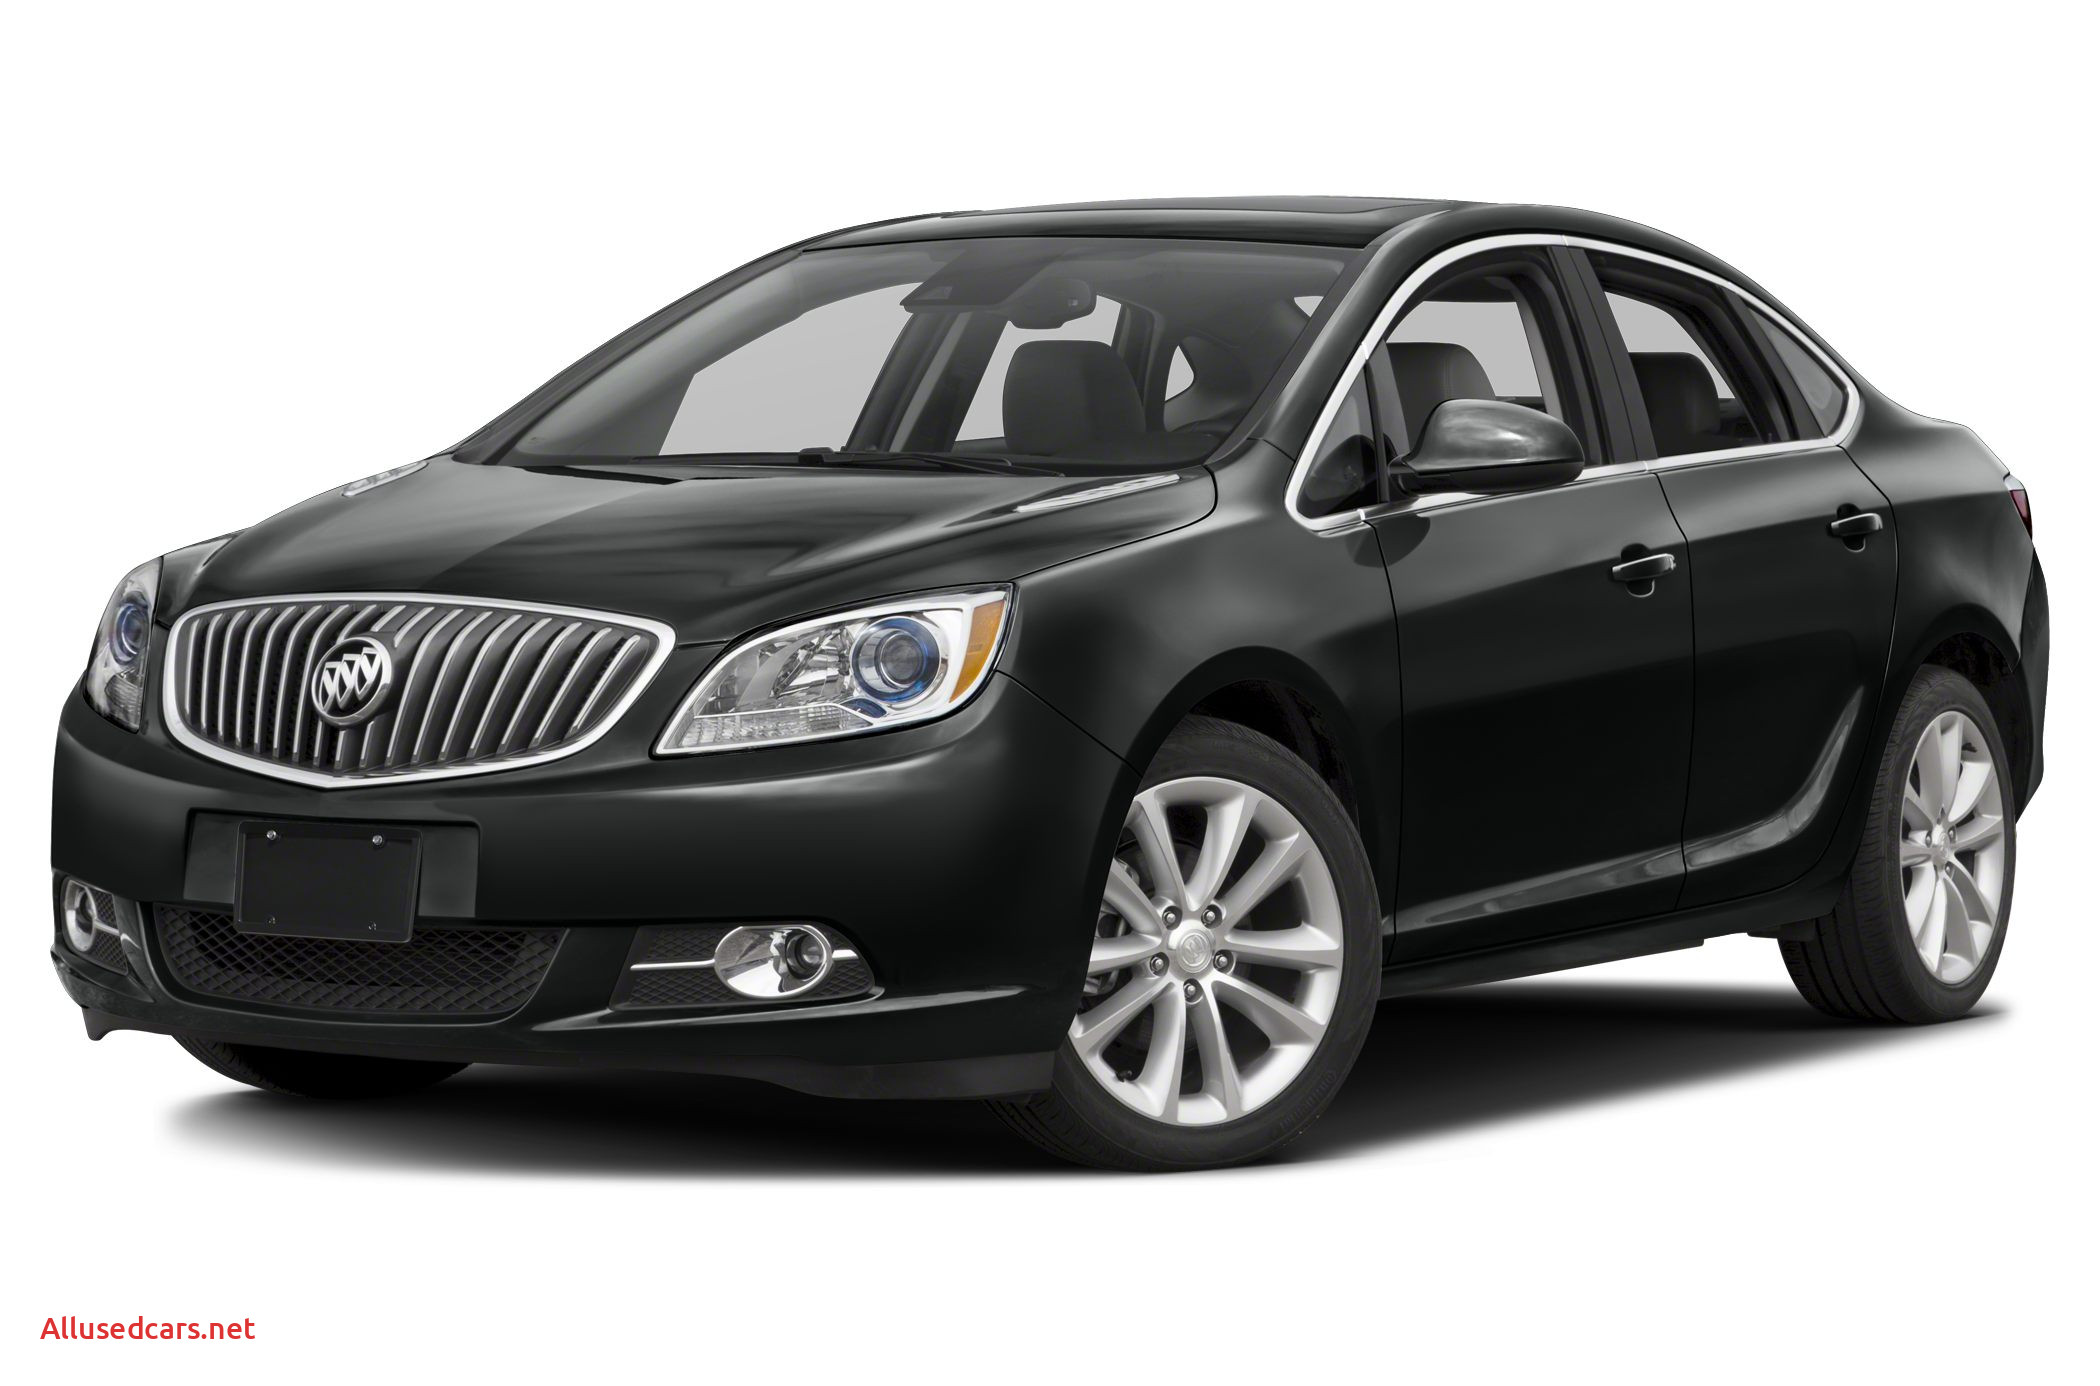 2015 Buick Verano Awesome 2017 Buick Verano Sport touring 4dr Sedan Safety Features